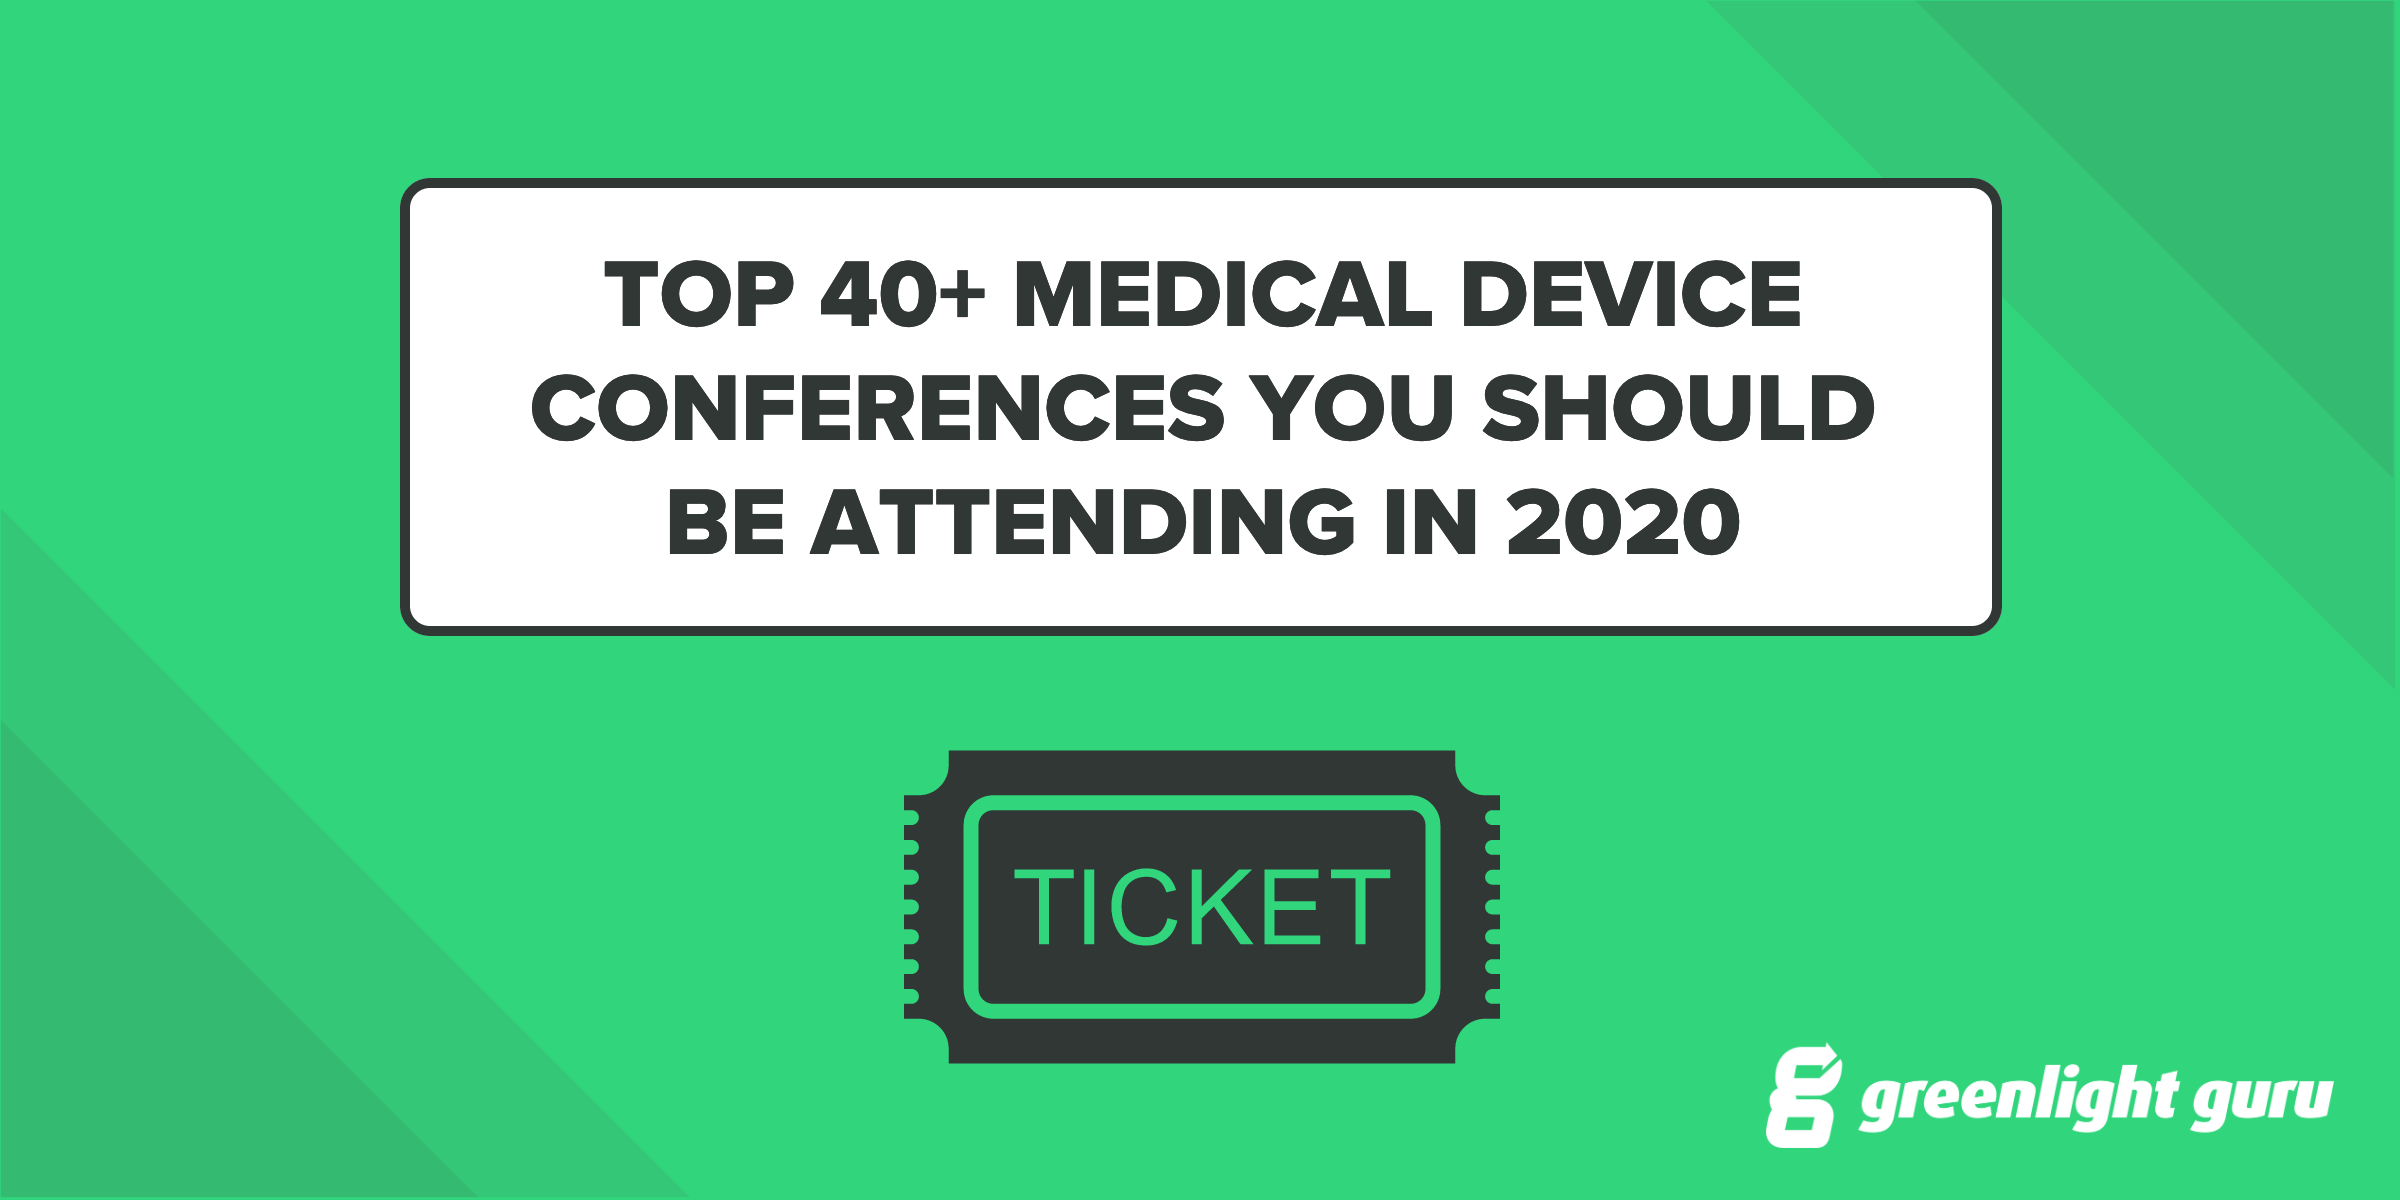 top_40+_medical_device_conferences-2020